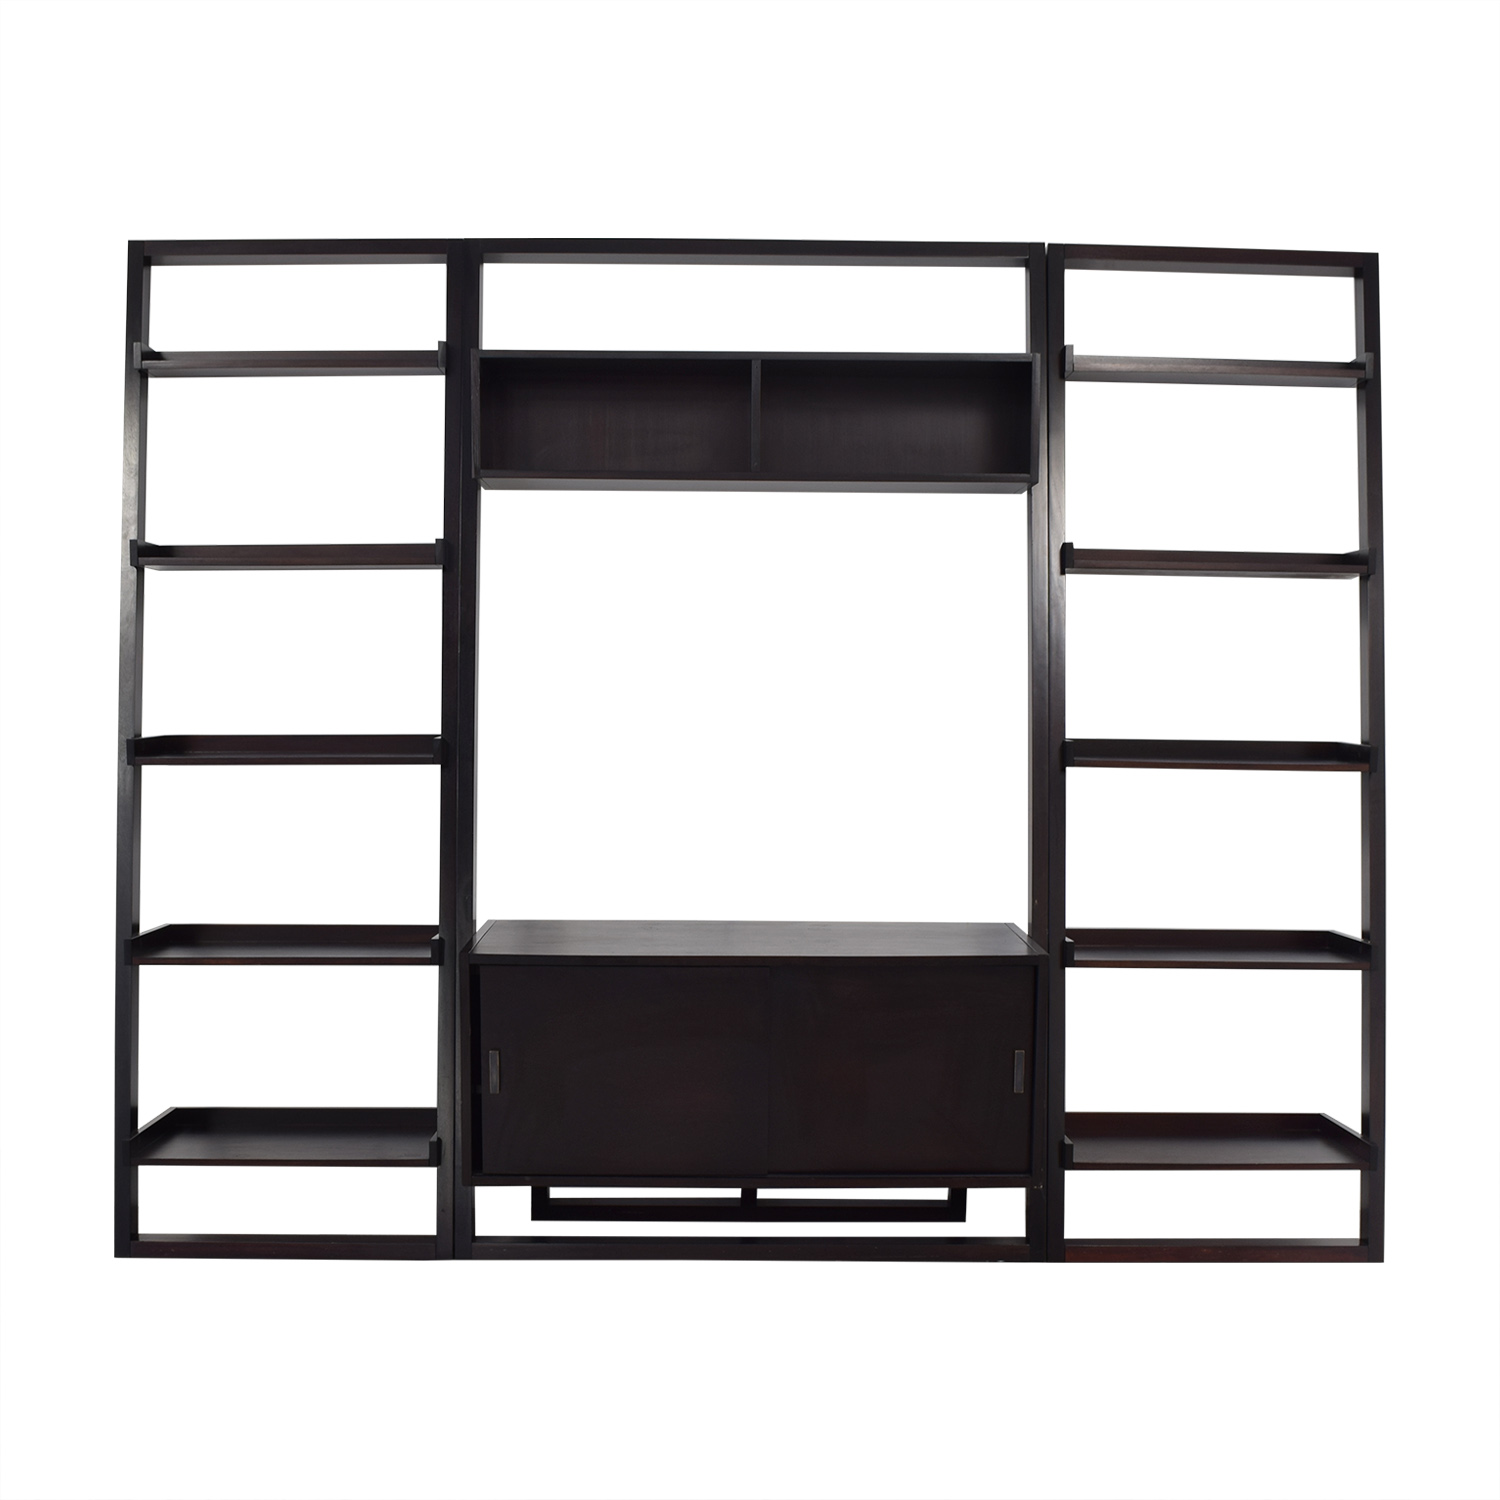 Crate & Barrel Crate & Barrel Sawyer Media Stand with Bookcases nj